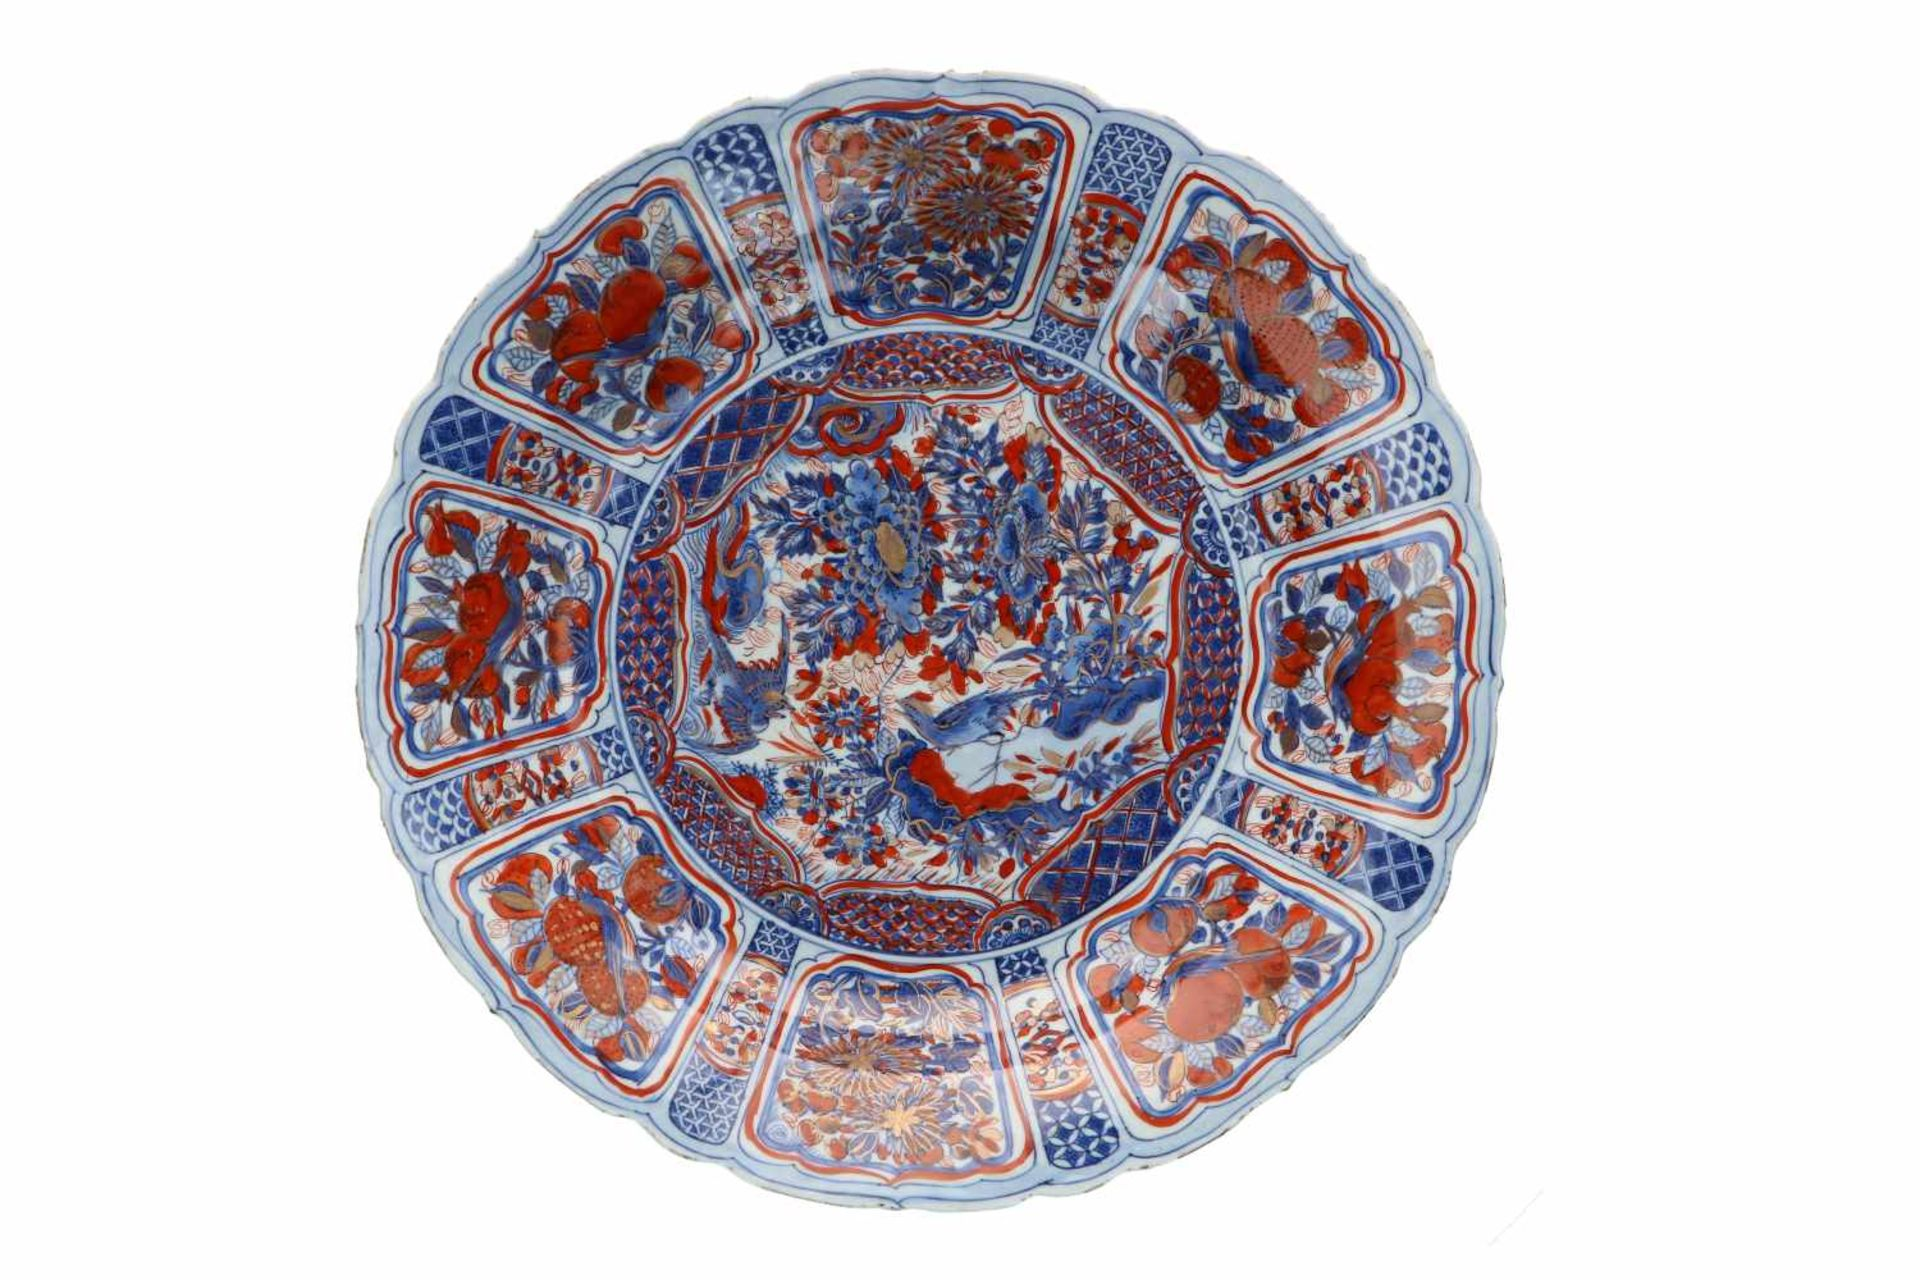 A blue and overglaze red porcelain deep charger with scalloped rim, decorated with flowers, fruits